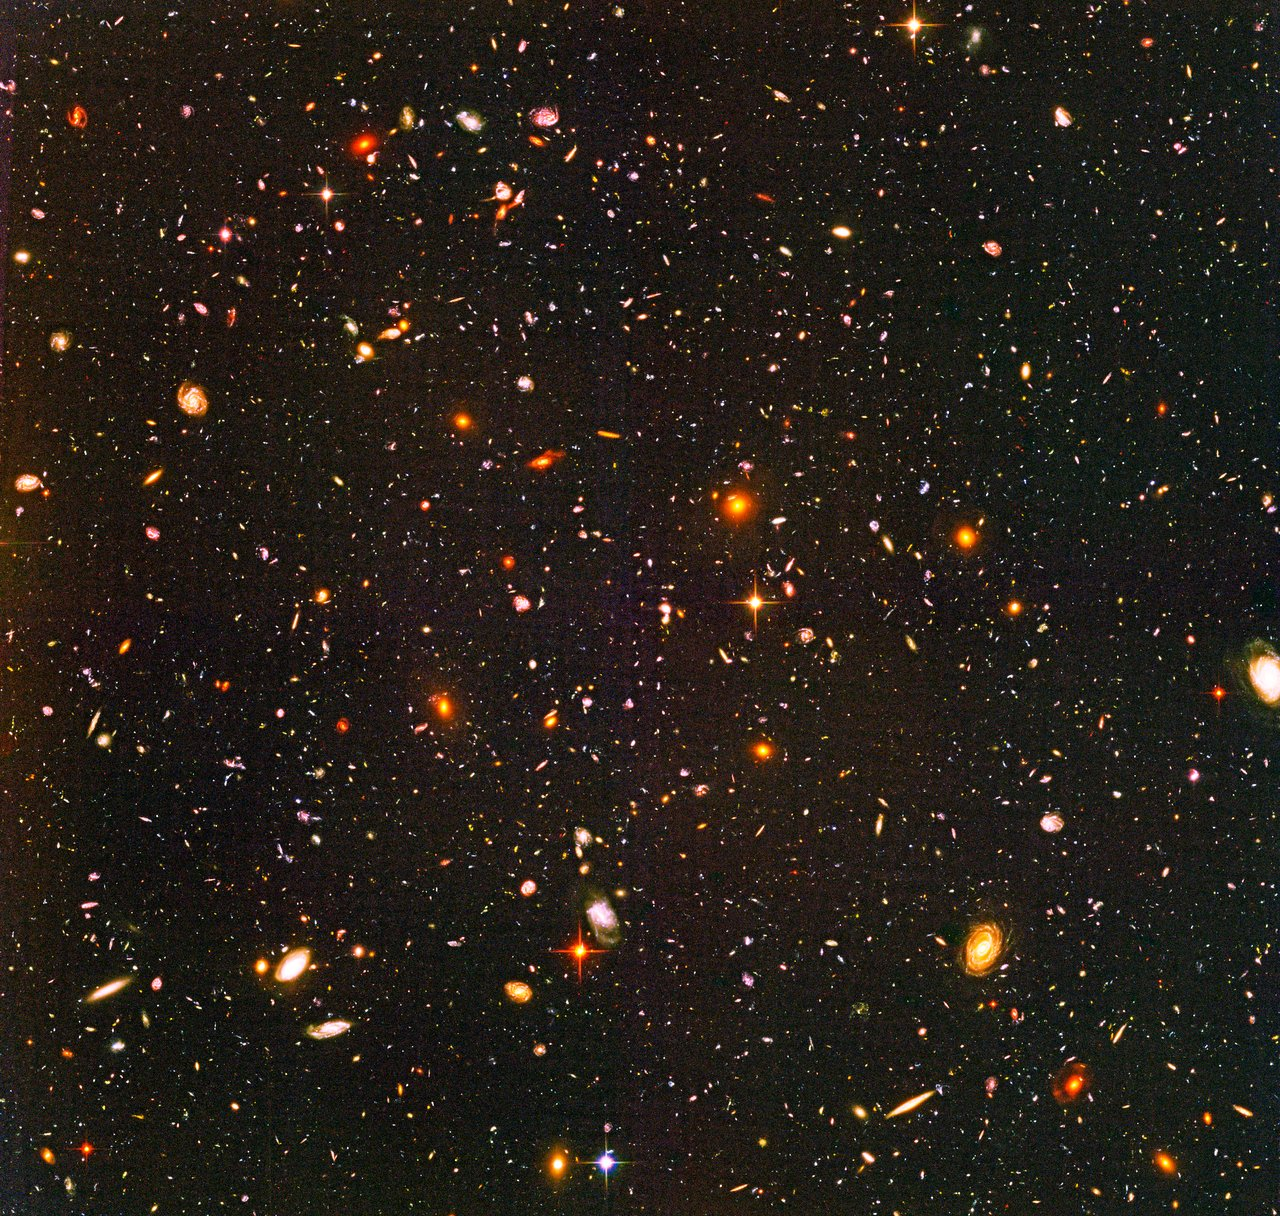 galaxies hubble telescope discovers-#33